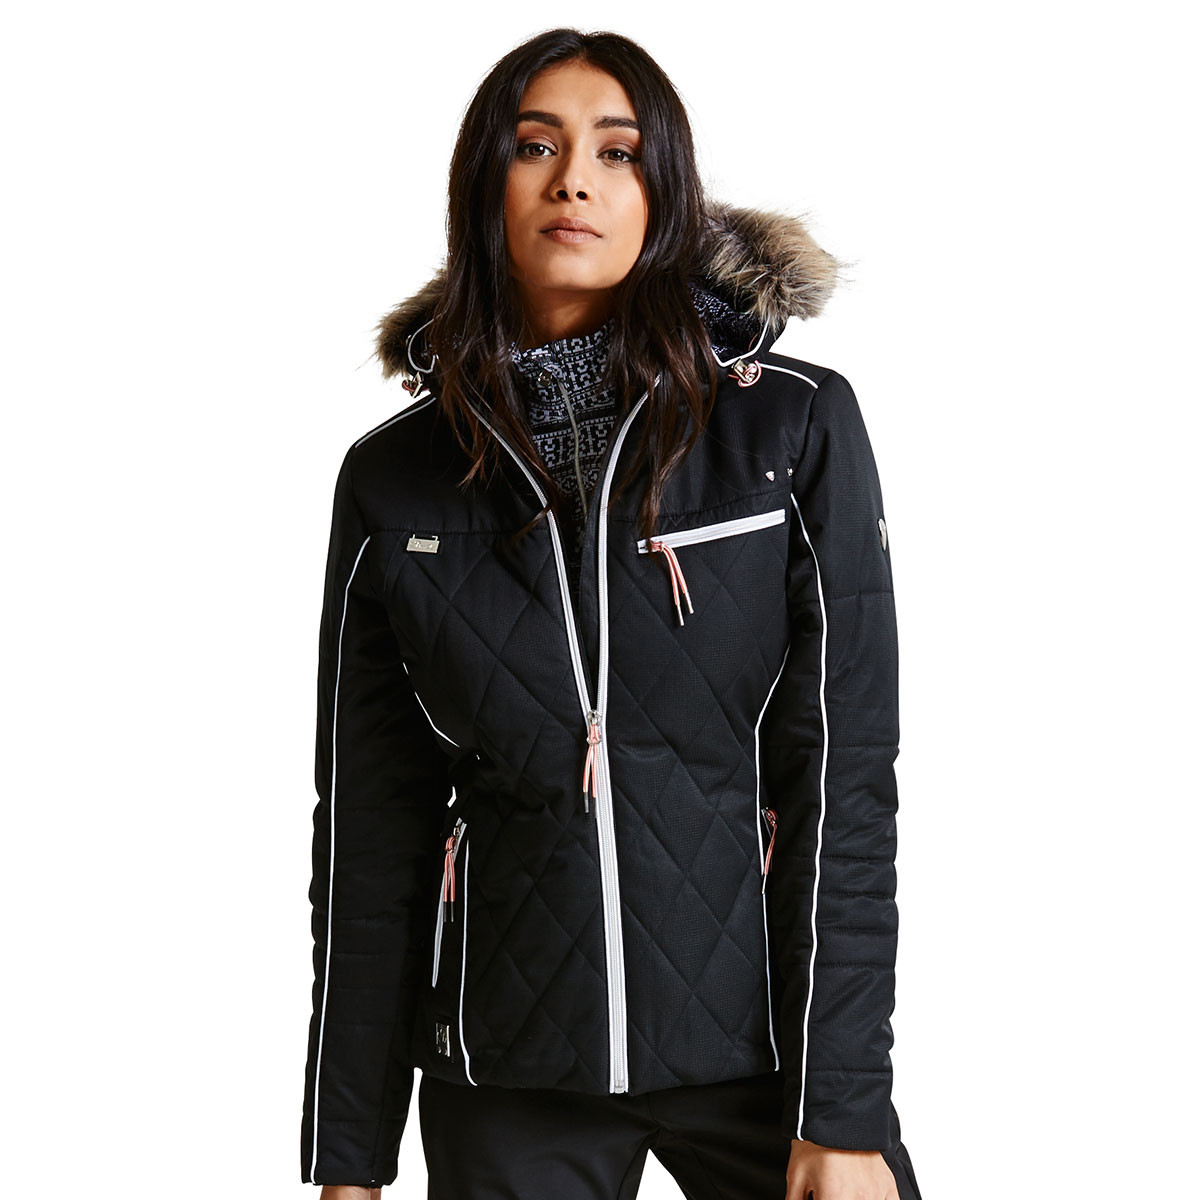 3e619a7e8a Dare2b Womens Waterproof Ornate Luxe Ski Jacket